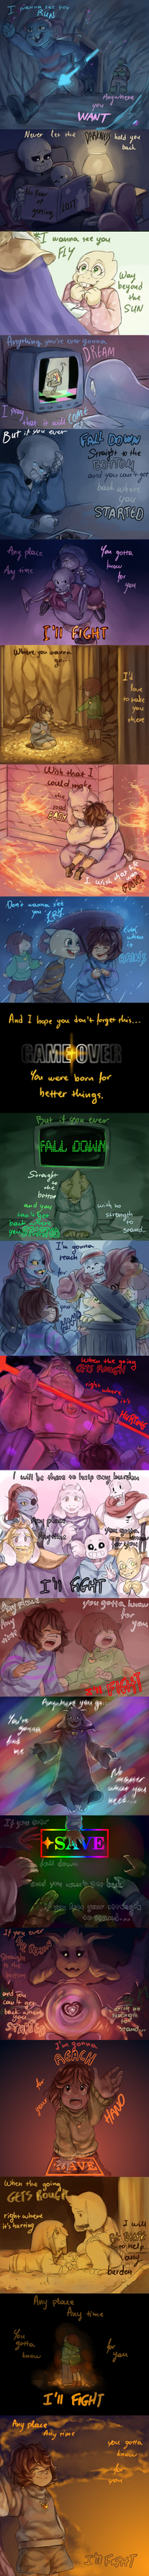 Undertale Lyric Comic: I'll Fight by Nojida